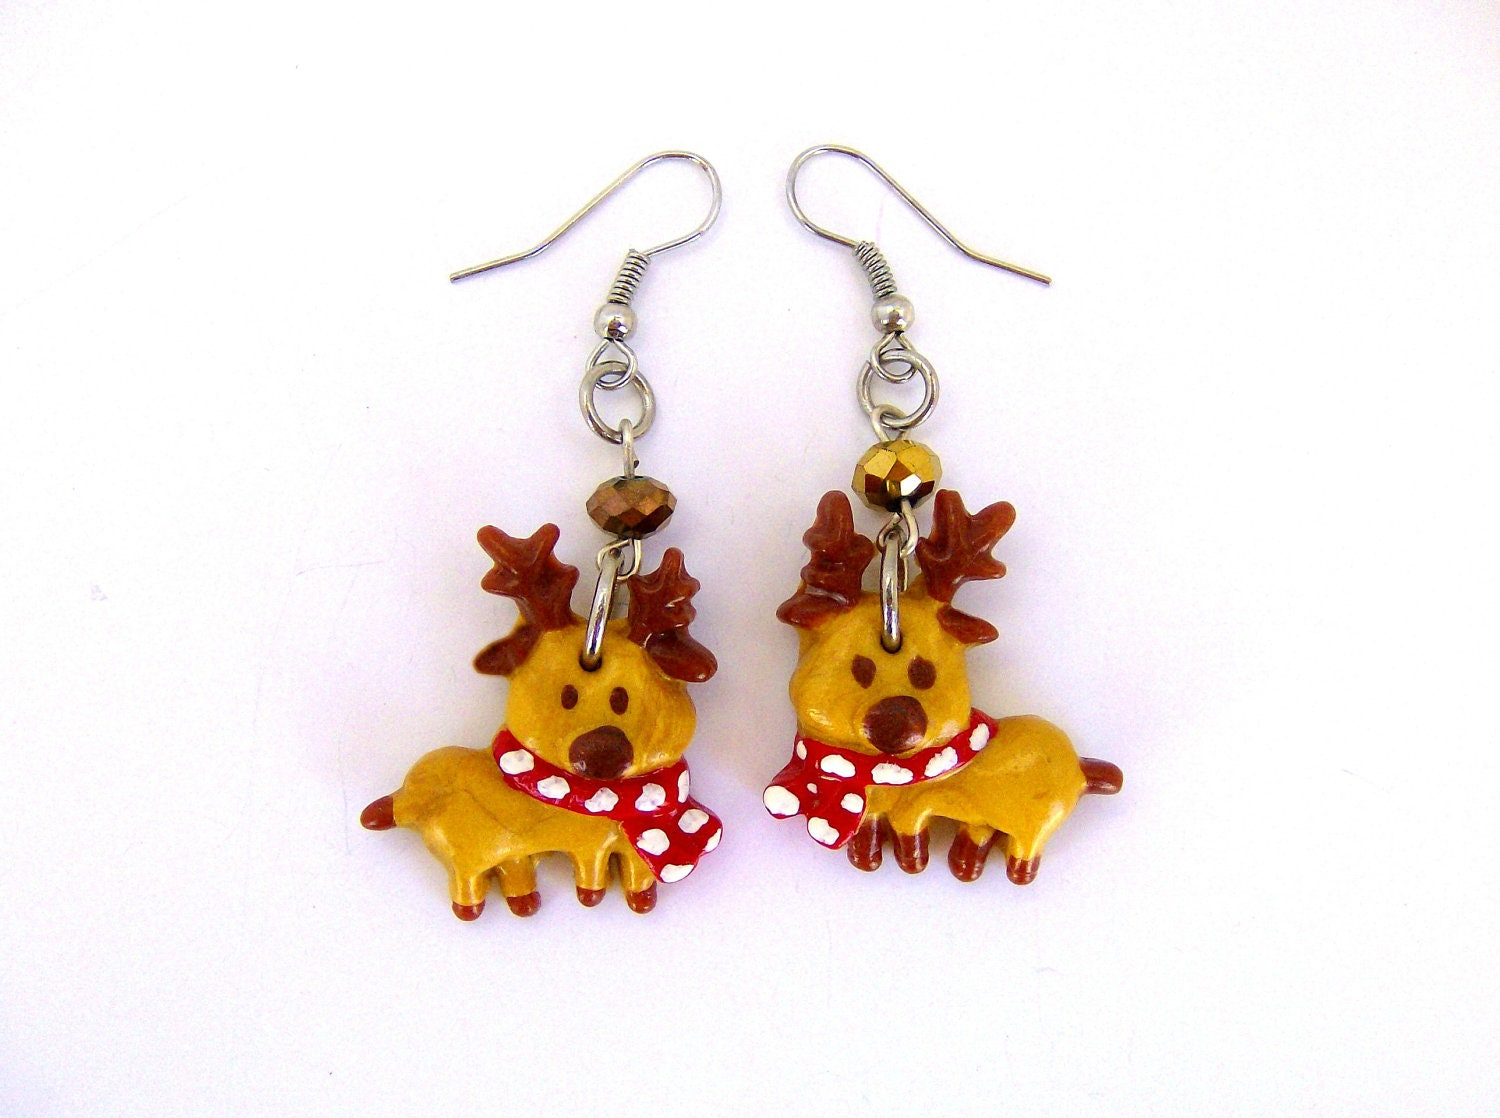 Reindeer Rudolph Earrings - Santa Claus - Christmas Earrings - Polymer Clay earrings - AngelasSweetGarden